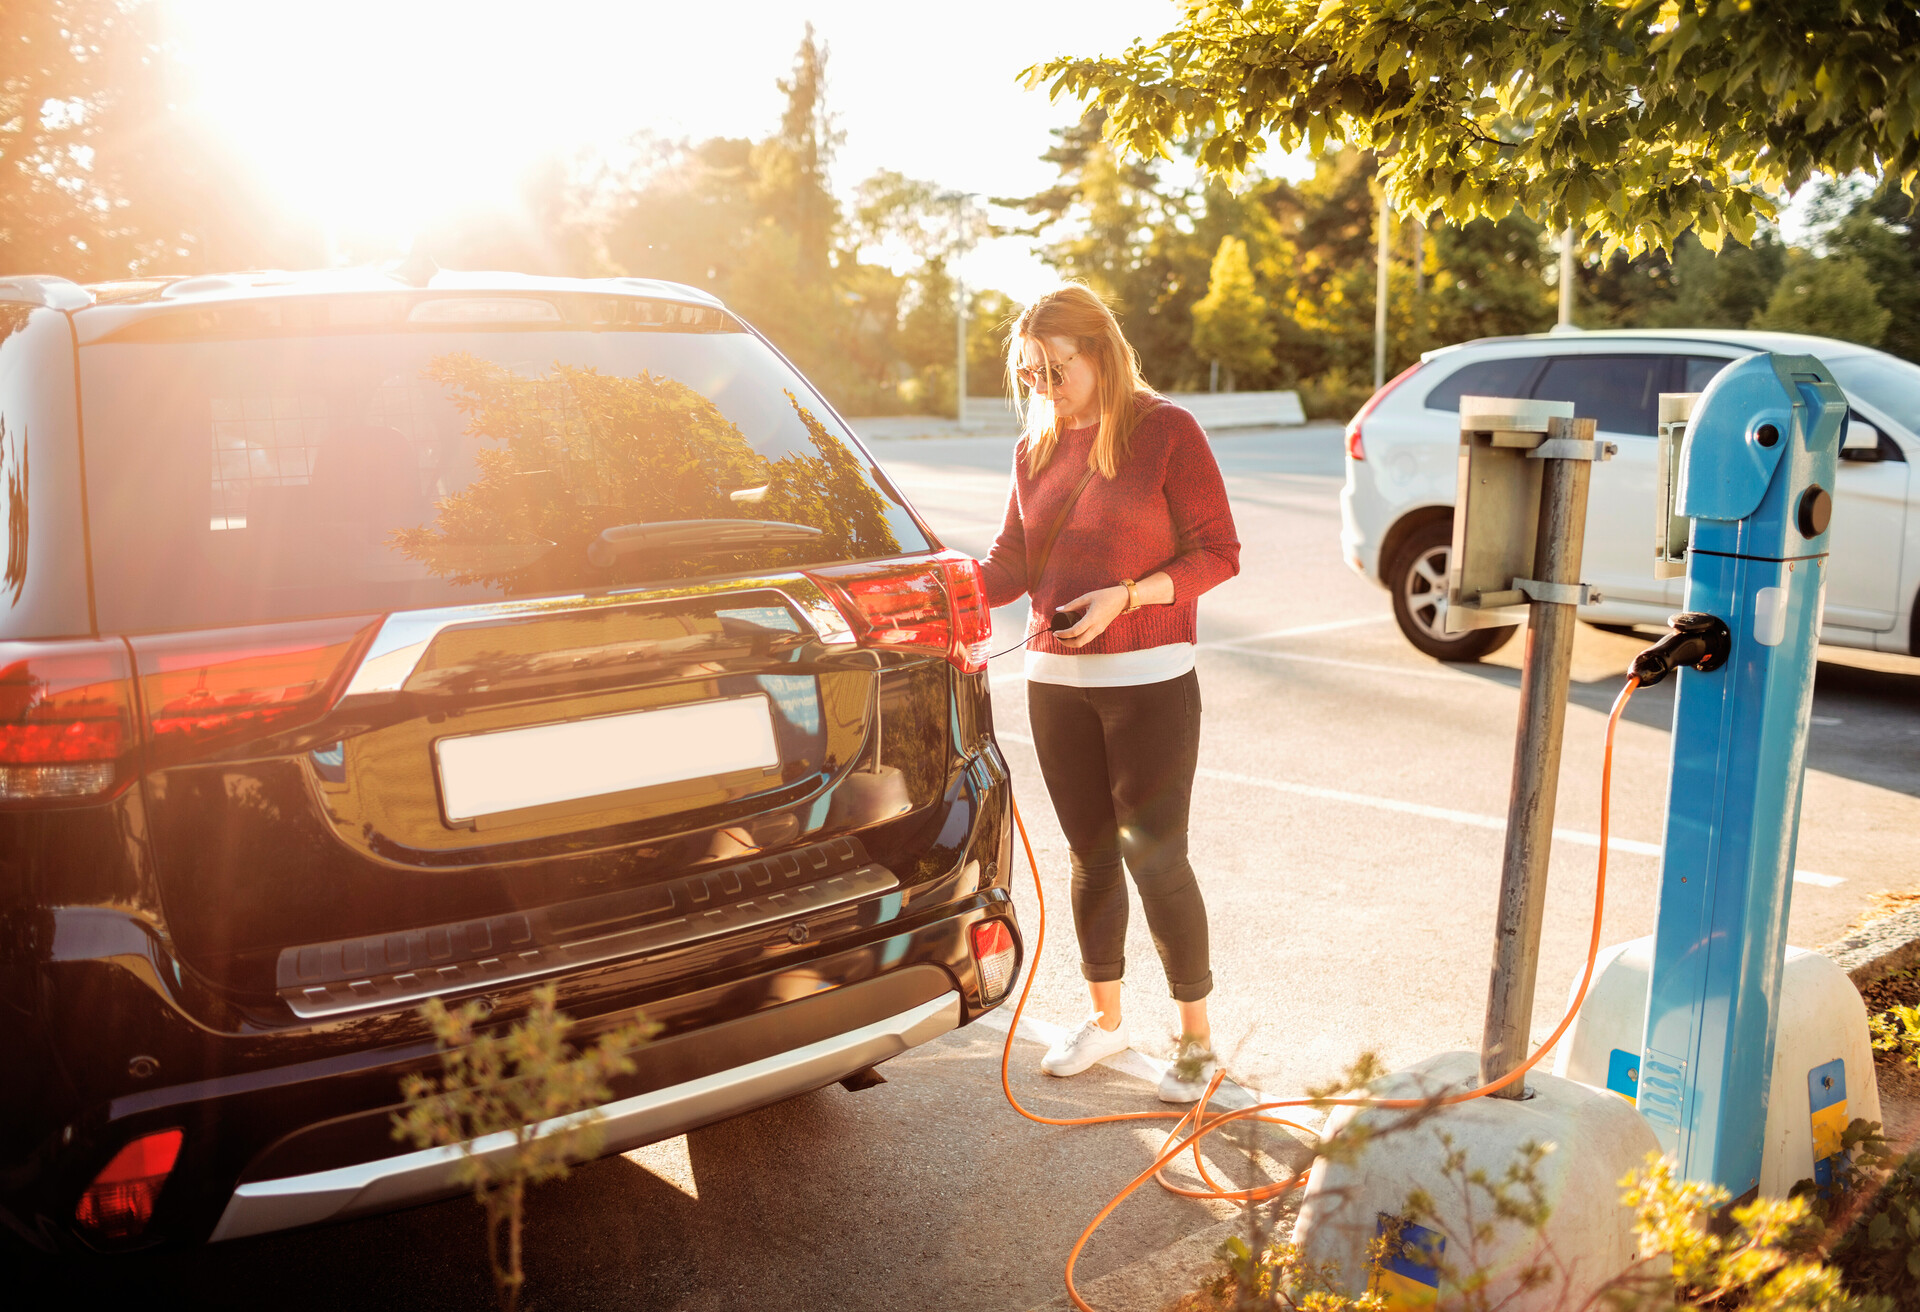 A girl charging an electric car